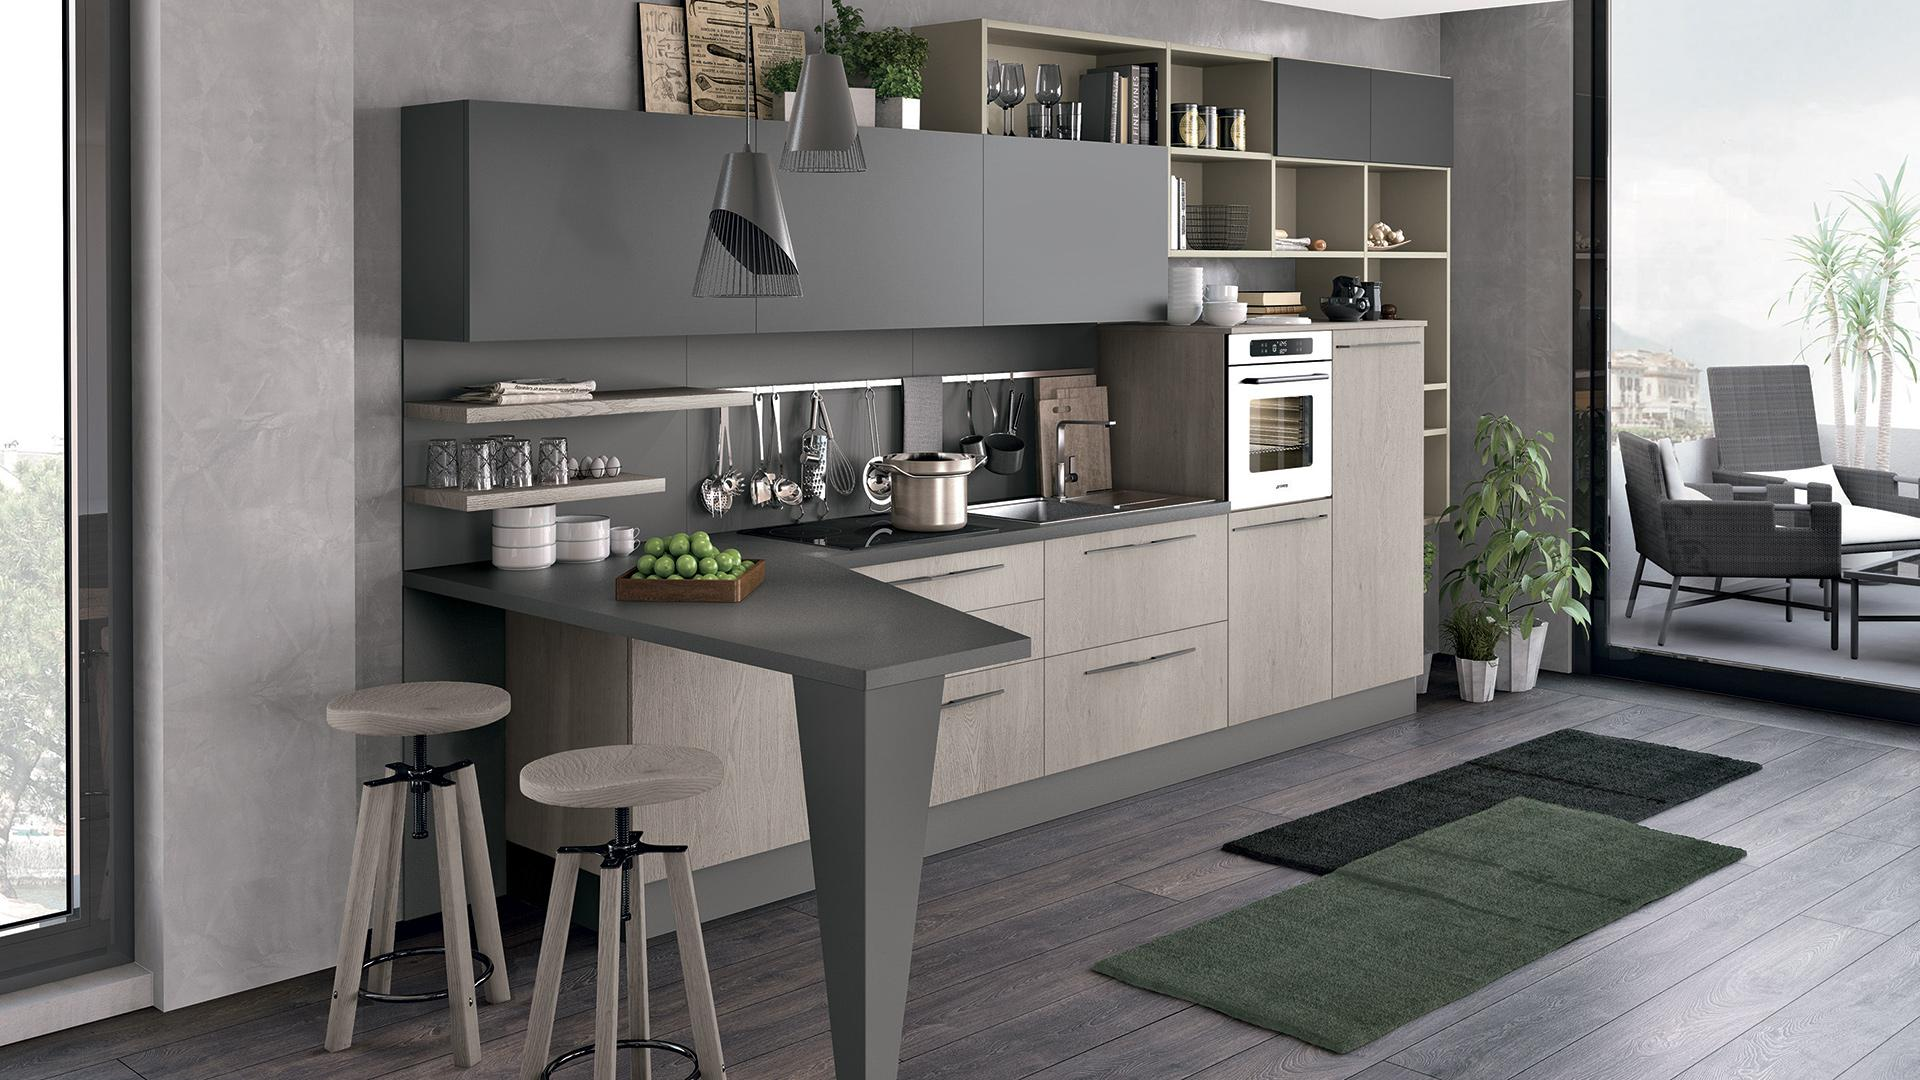 Stunning Preventivo Cucina Lube Gallery - Skilifts.us - skilifts.us